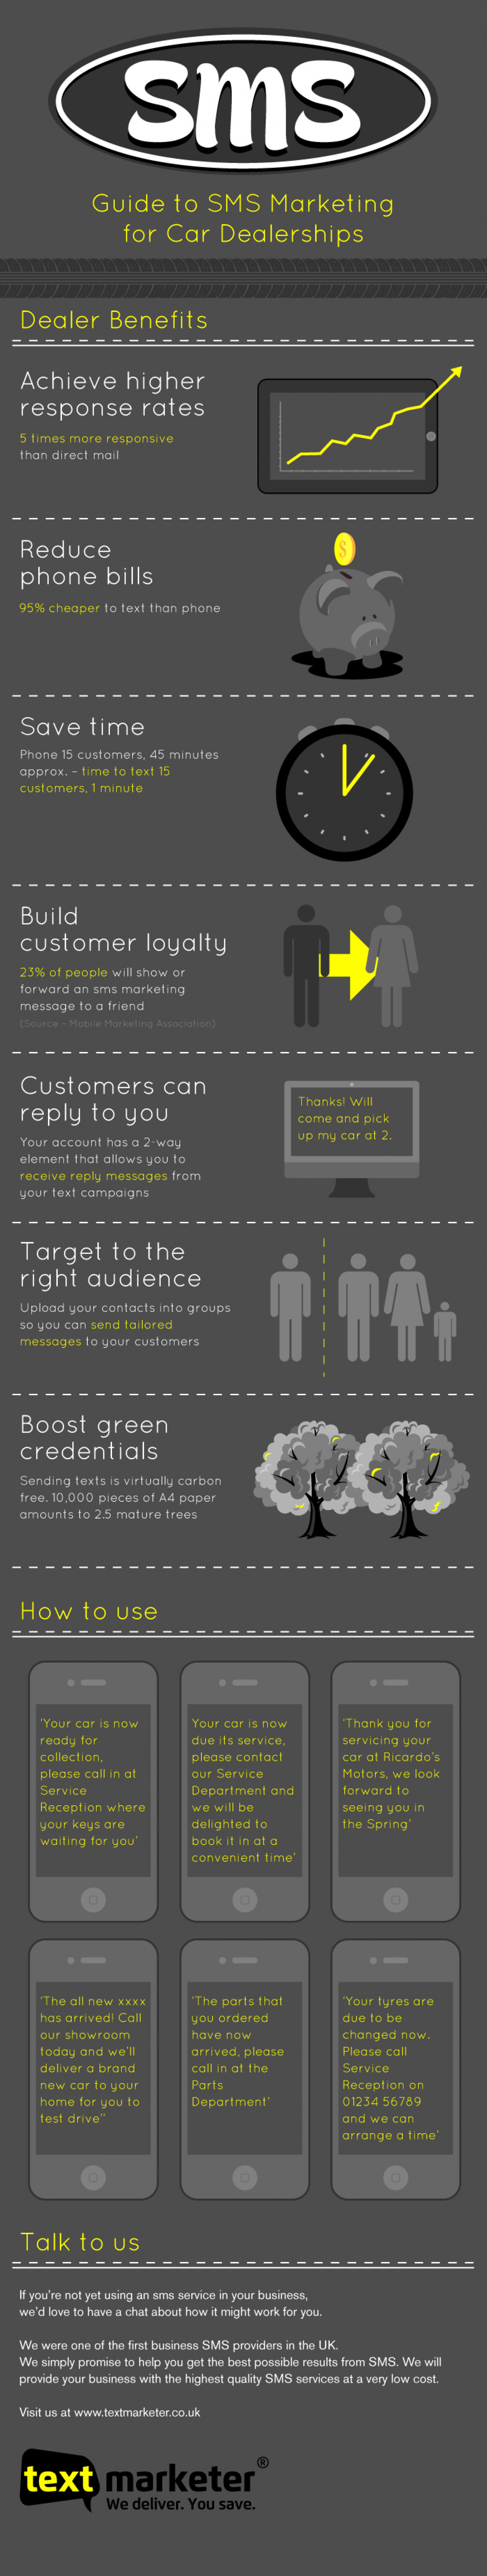 SMS marketing for car dealerships Infographic